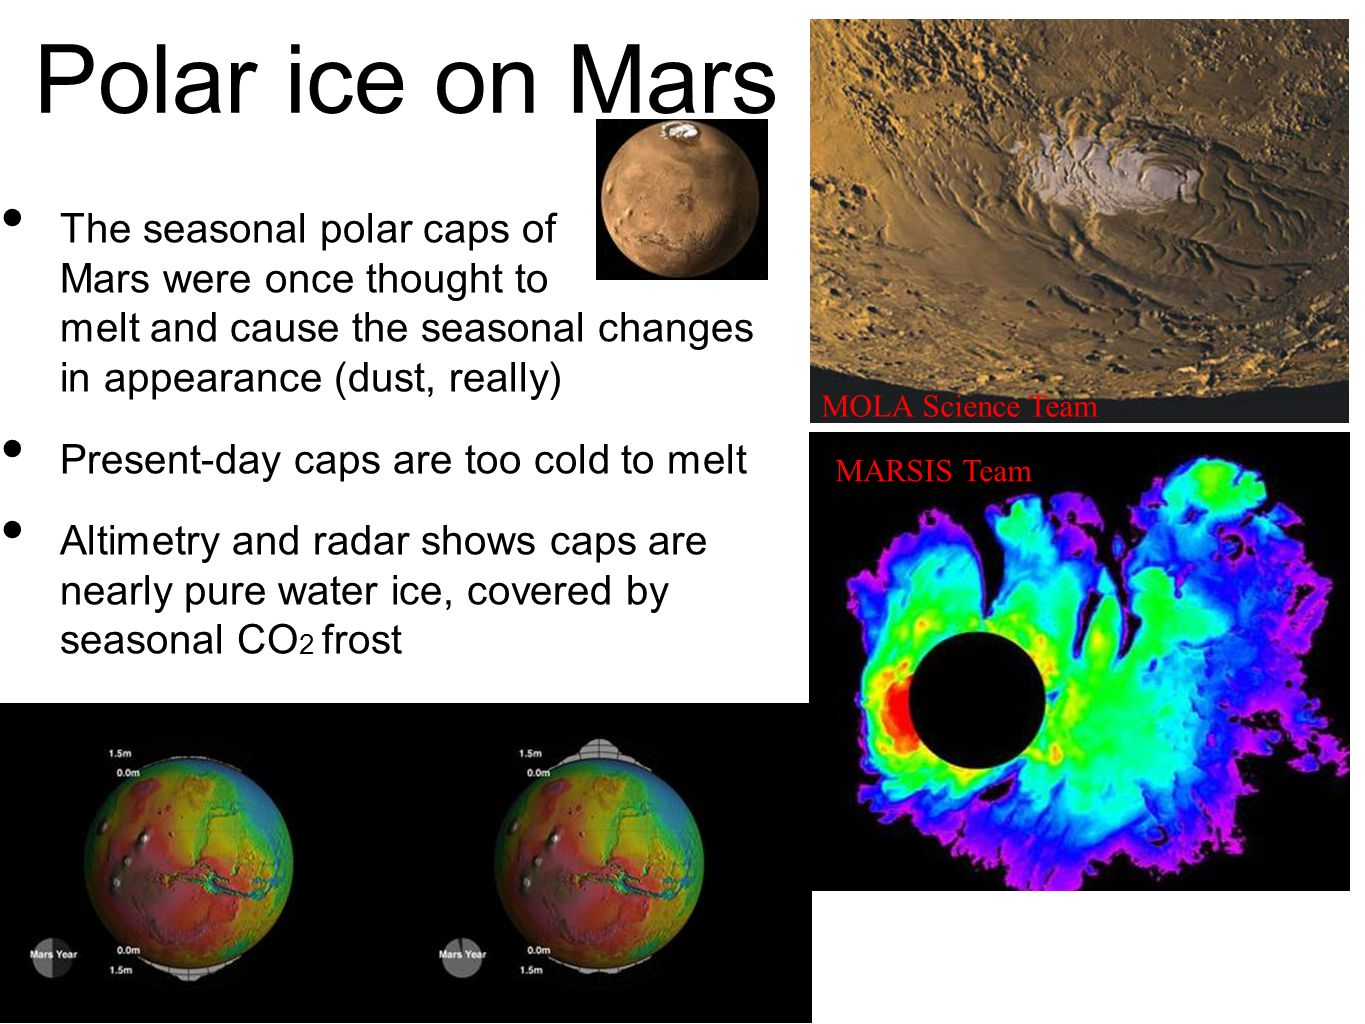 Polar ice on Mars The seasonal polar caps of Mars were once thought to melt and cause the seasonal changes in appearance (dust, really) Present-day caps are too cold to melt Altimetry and radar shows caps are nearly pure water ice, covered by seasonal CO 2 frost MOLA Science Team MARSIS Team